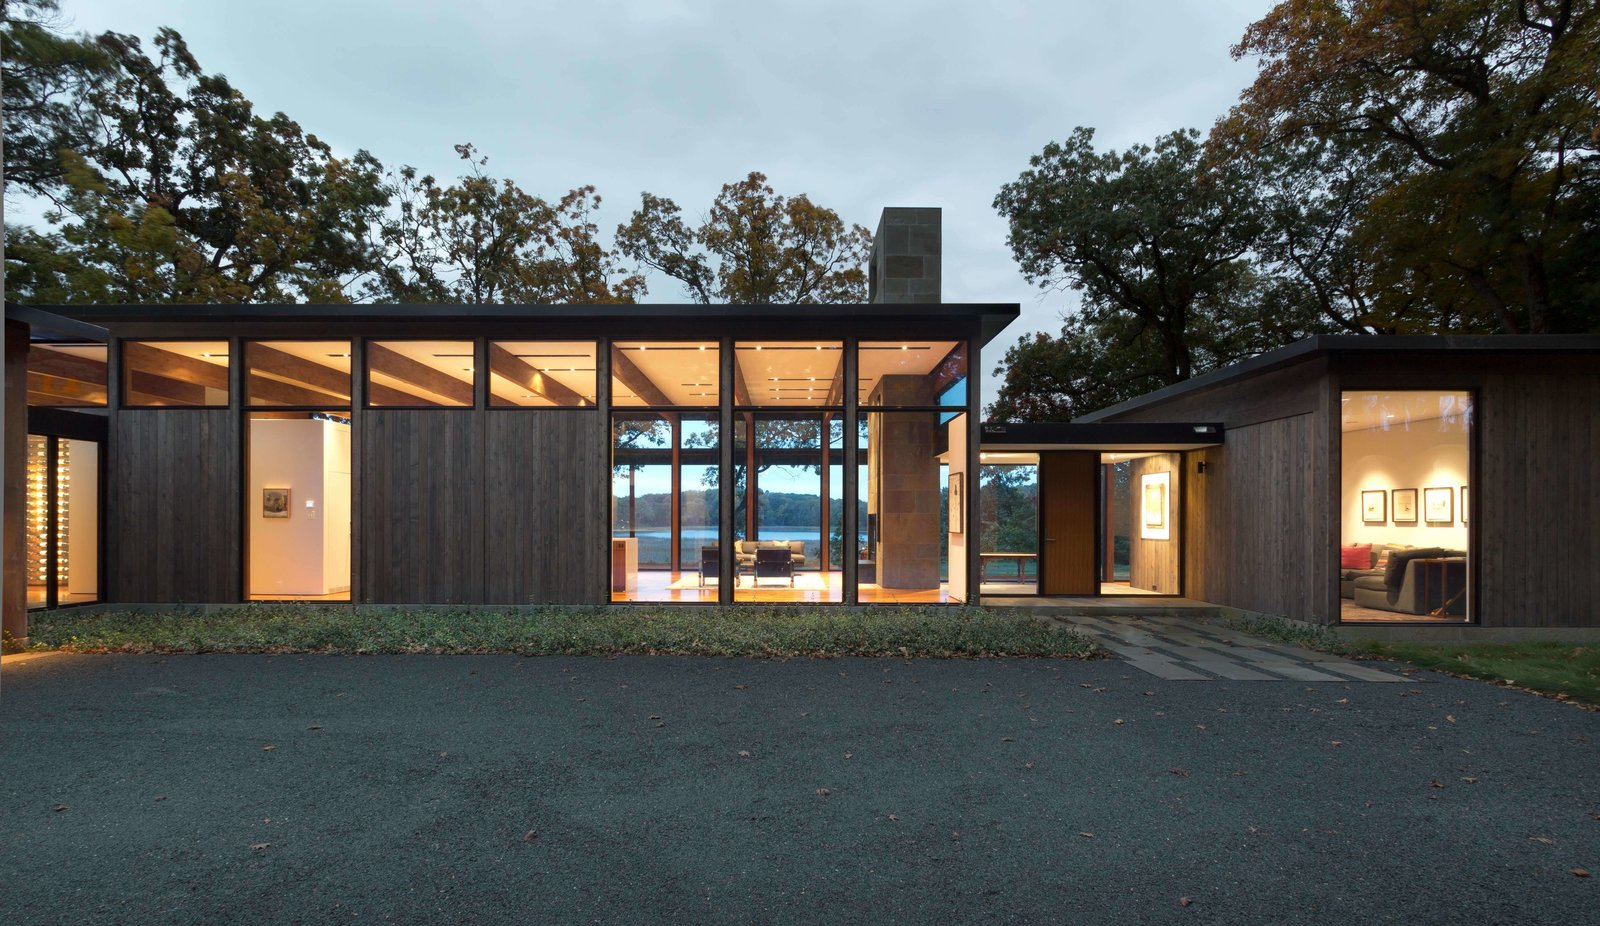 """Exterior, Wood Siding Material, Metal Siding Material, Glass Siding Material, Metal Roof Material, House Building Type, and Flat RoofLine Californian modernism informs the shape of this Minnesota residence.  Photos from This Glass House and """"Shiny Shed"""" Merge With Nature in Minnesota"""